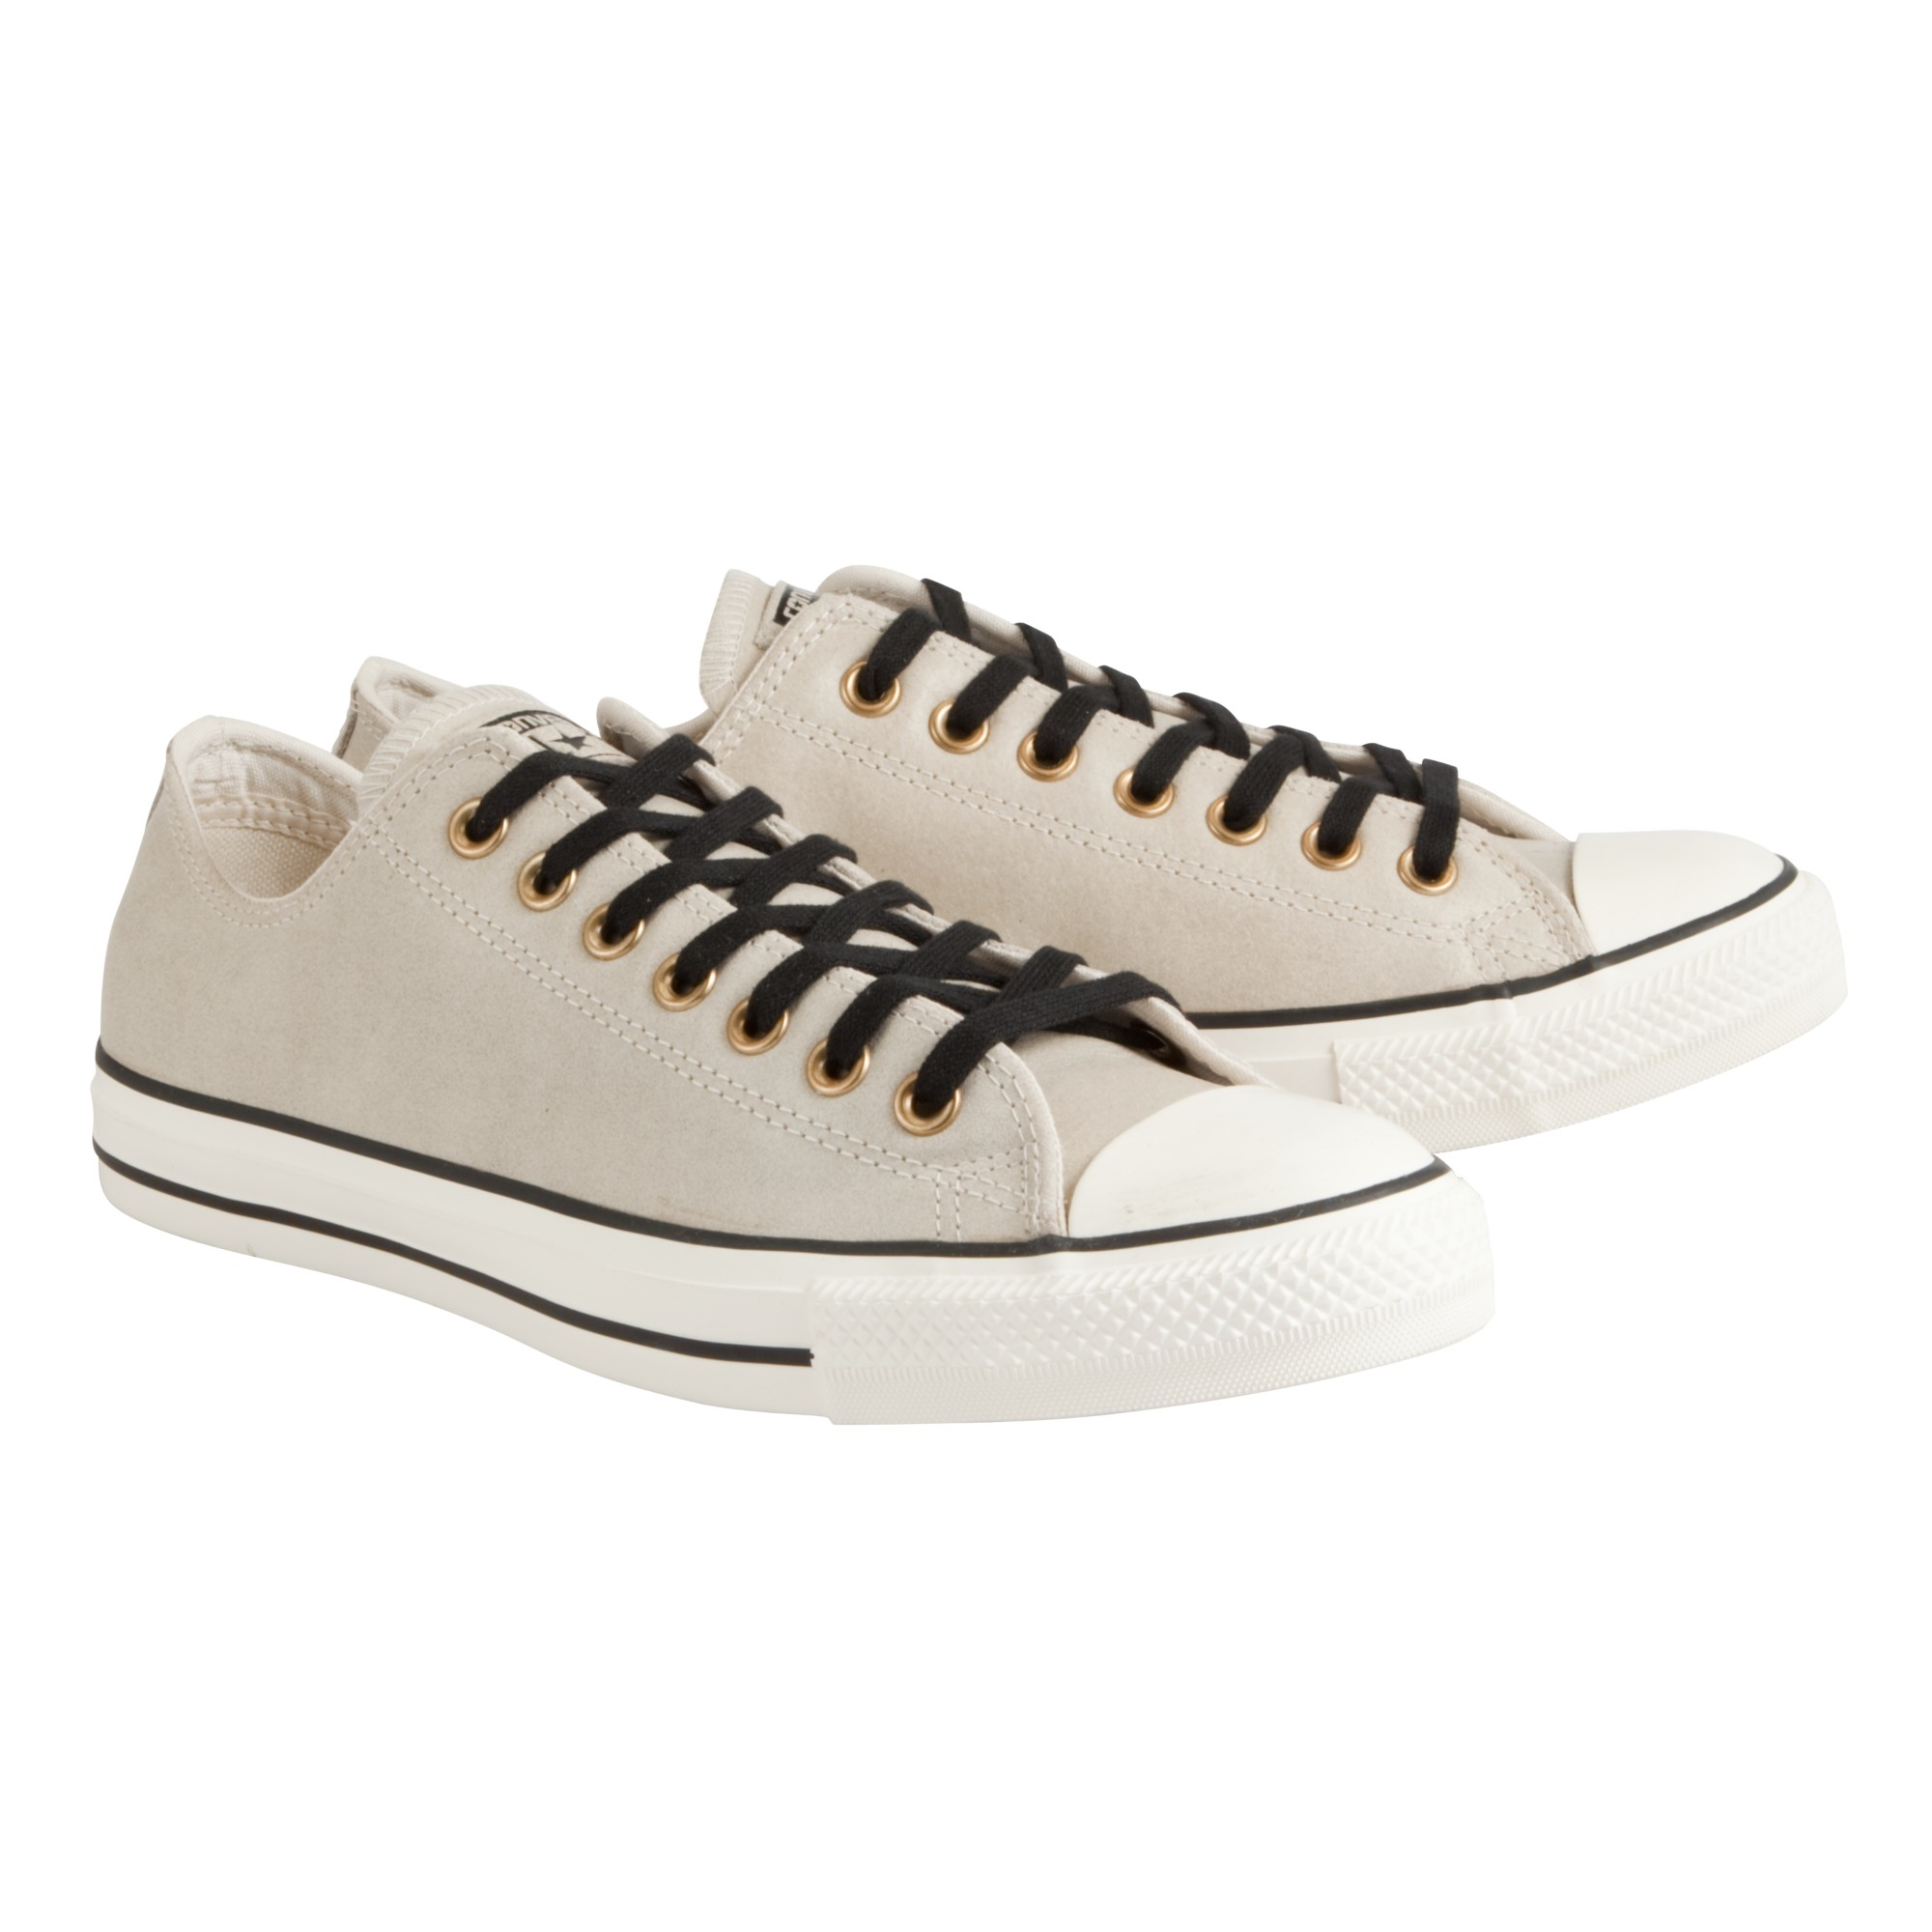 d873367f55cd Converse Chuck Taylor All Star Leather Trainers in Natural for Men ...